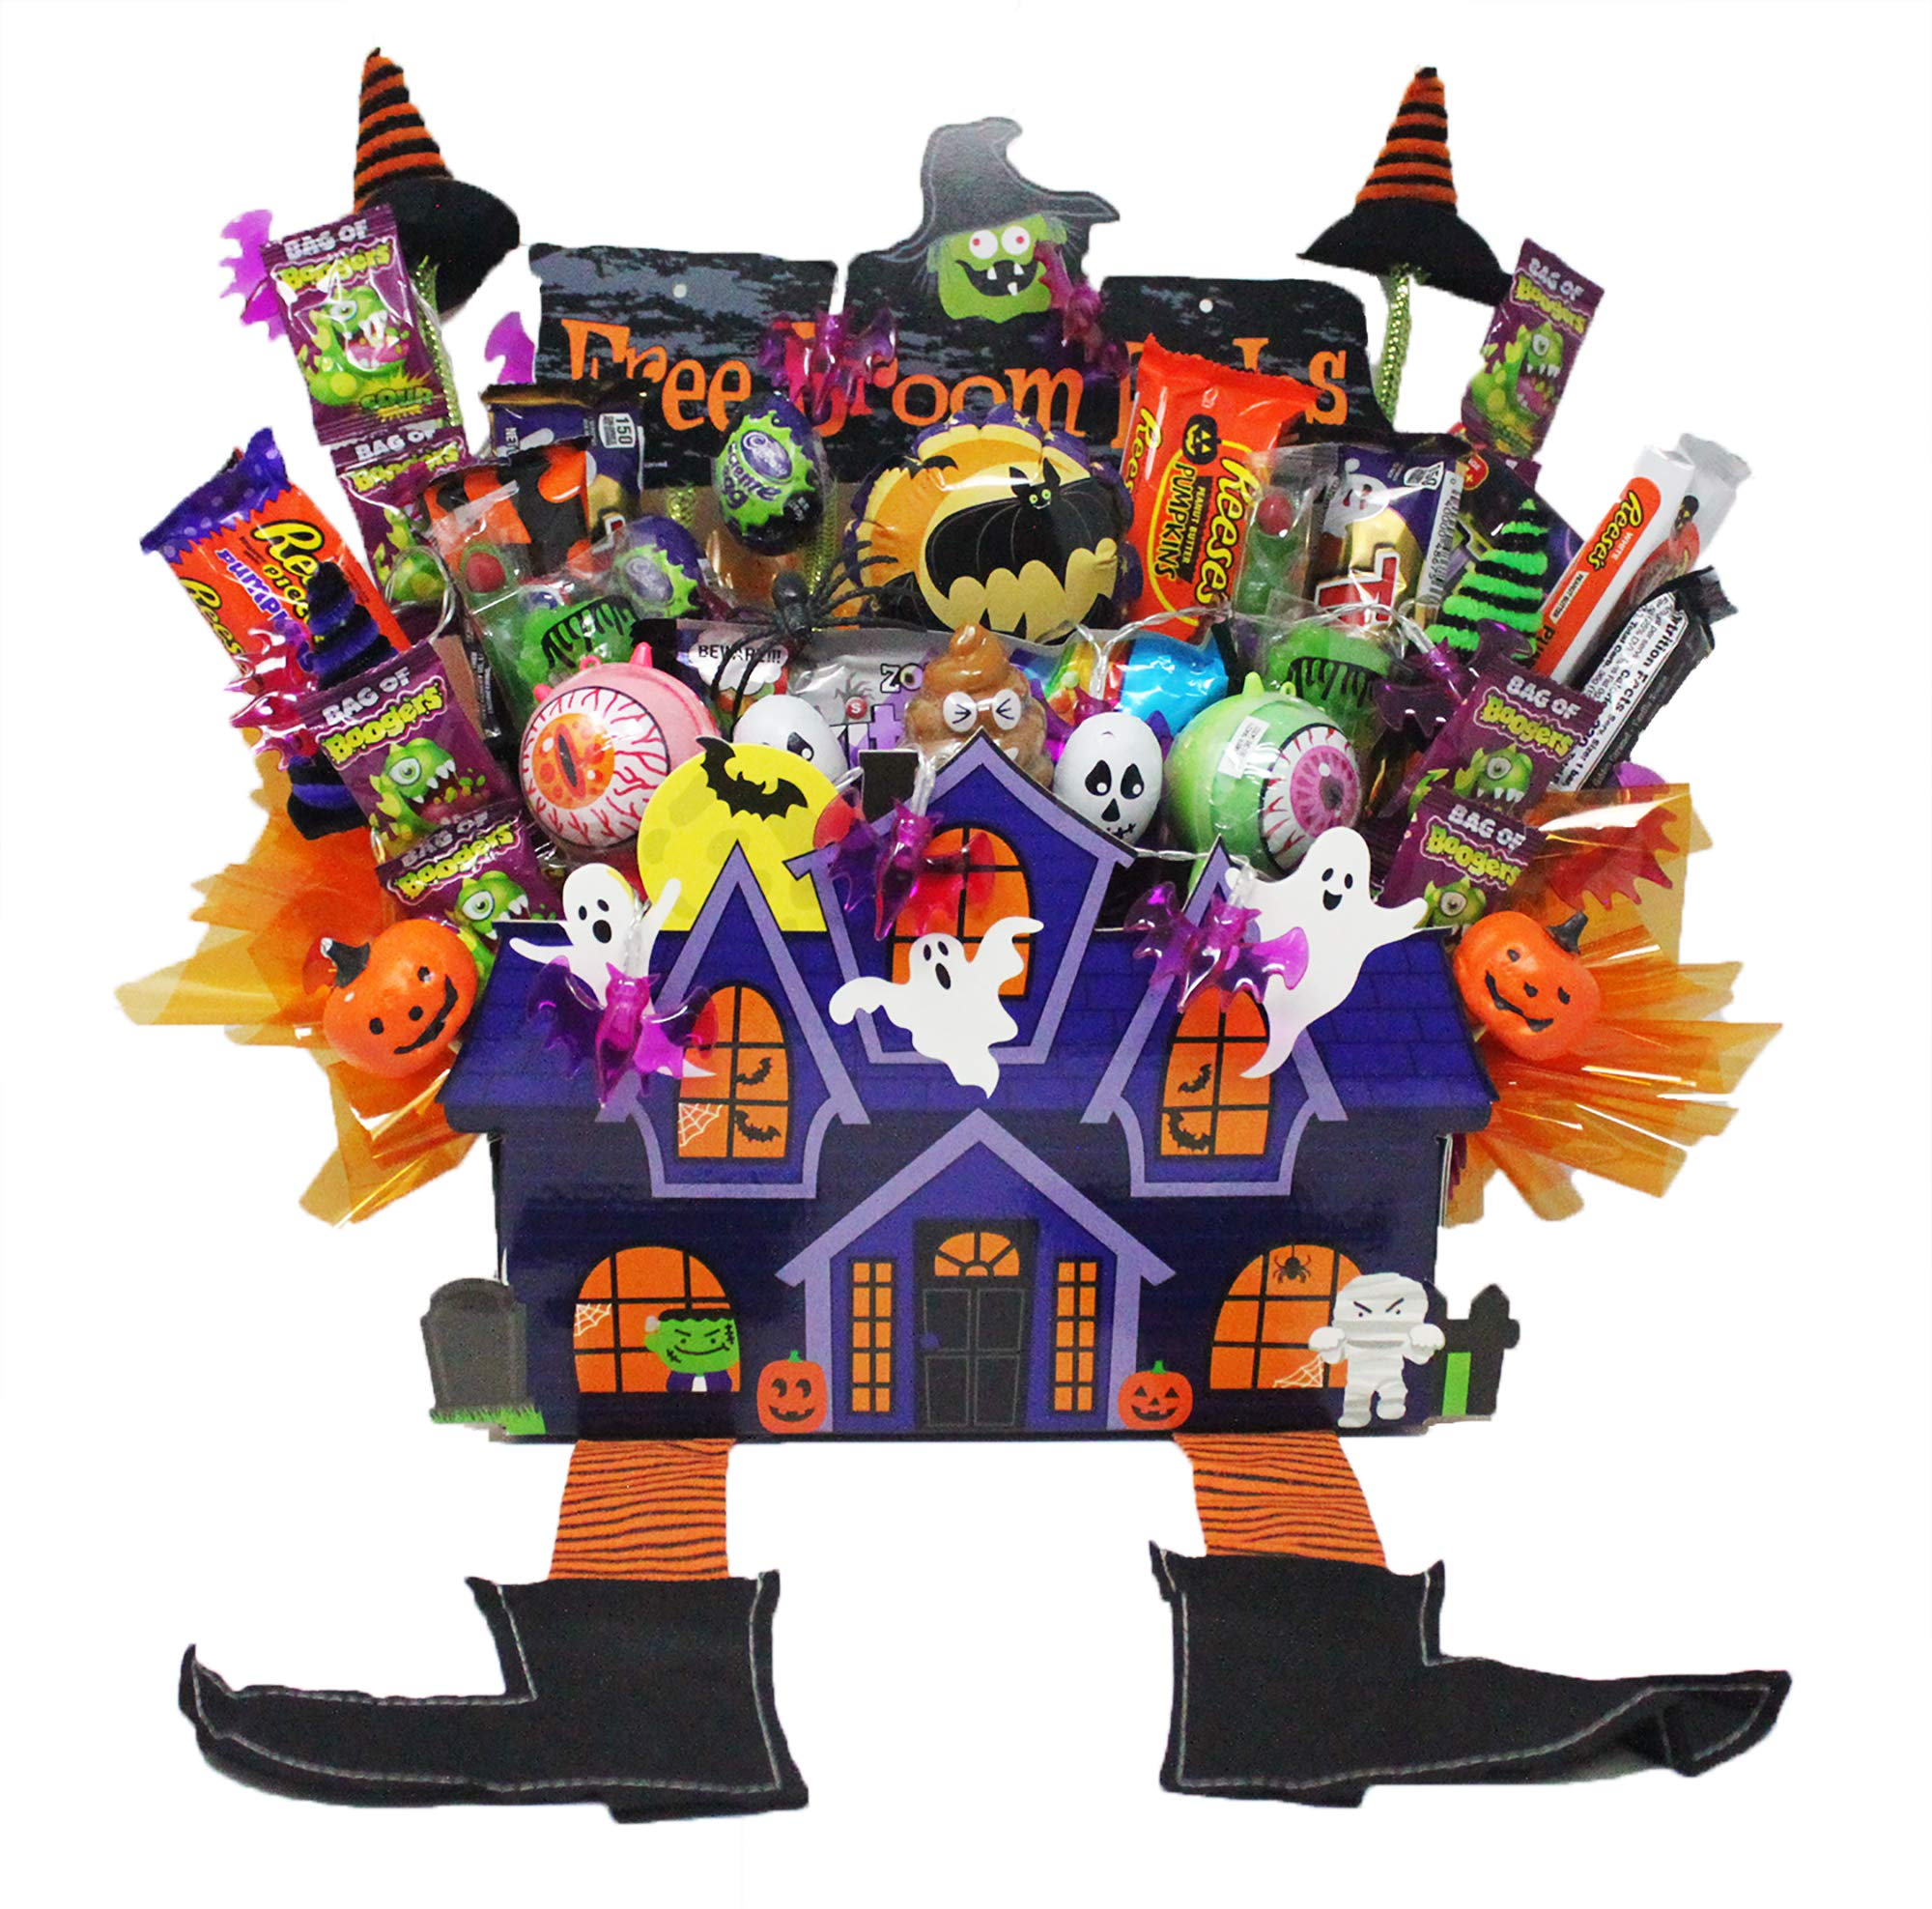 Halloween Haunted House Candy Bouquet Loaded with Snickers Jack-O-Lanterns, Reese's Pieces King Size Chocolate Bars and Assorted Candy. Arranged in a Spooky House Gift Box. by Online 24/7 LLC